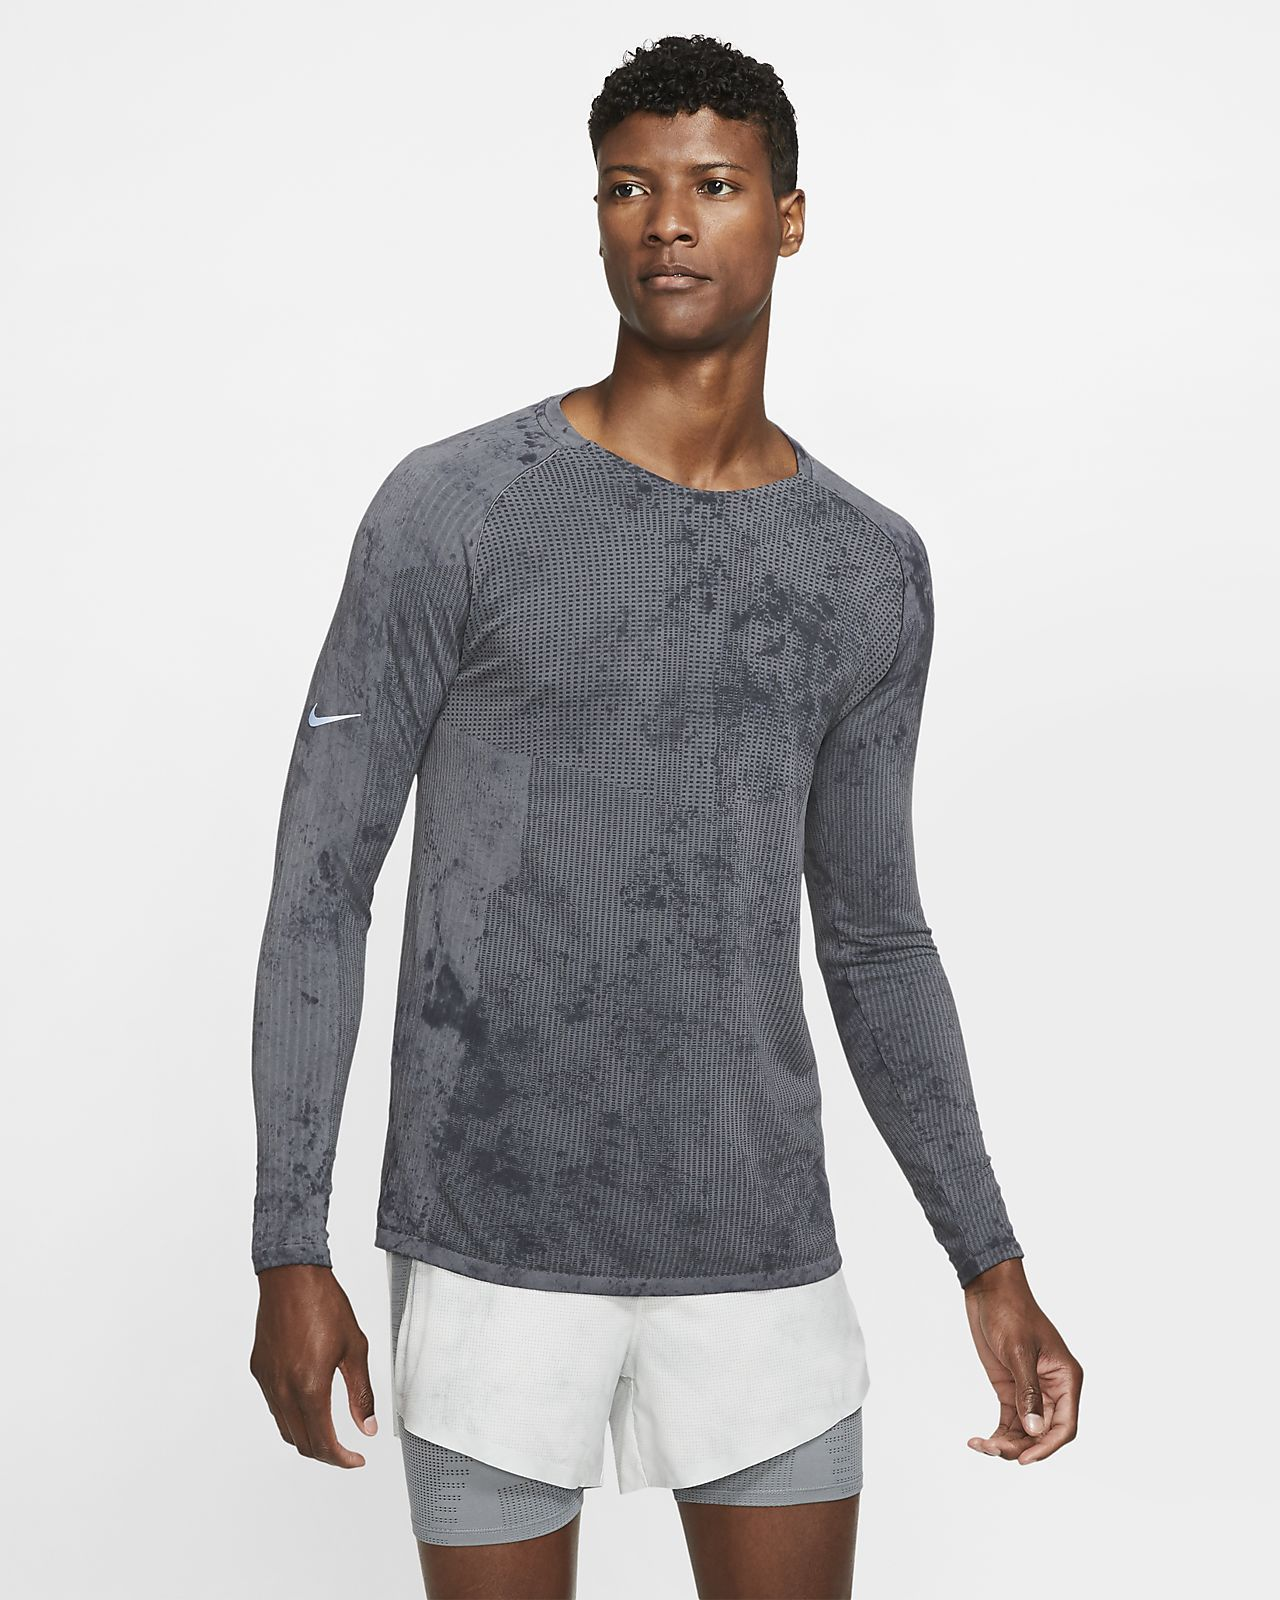 Tech Pack Men's LongSleeve Running Top Nike tech, Tops